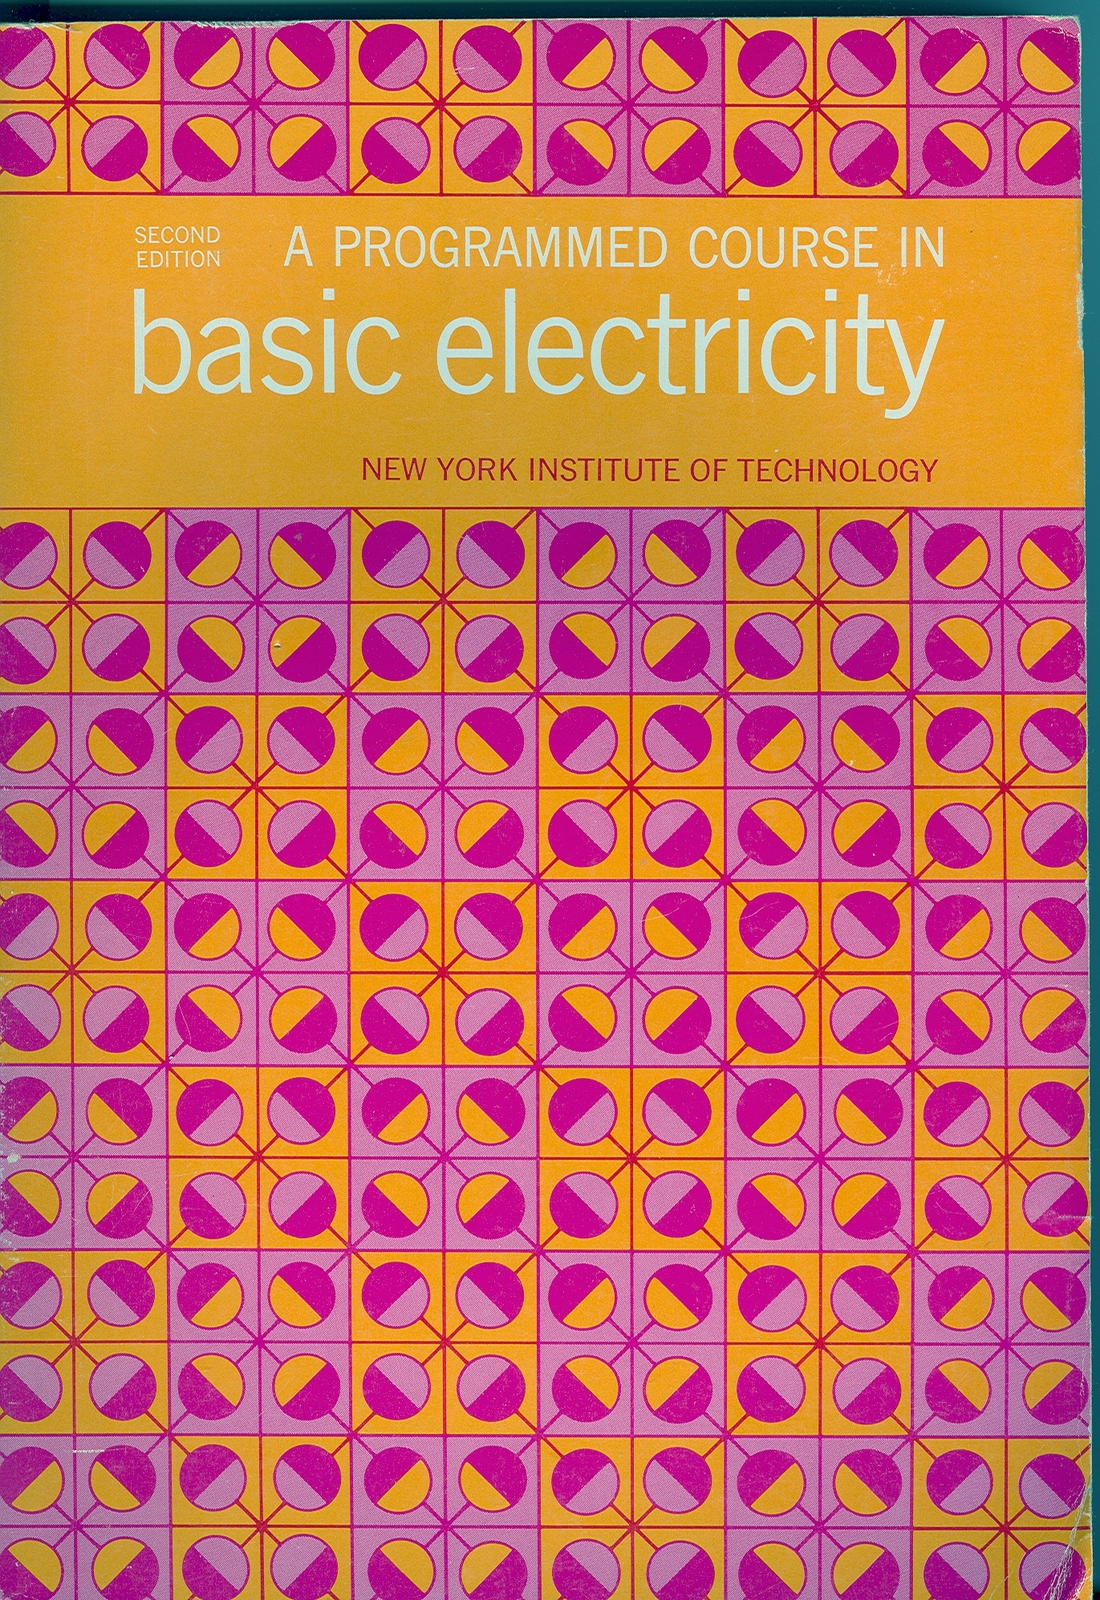 A PROGRAMMED COURSE IN BASIC ELECTRICITY;1970 PB;2nd Edition / 7th Printing;NYIT